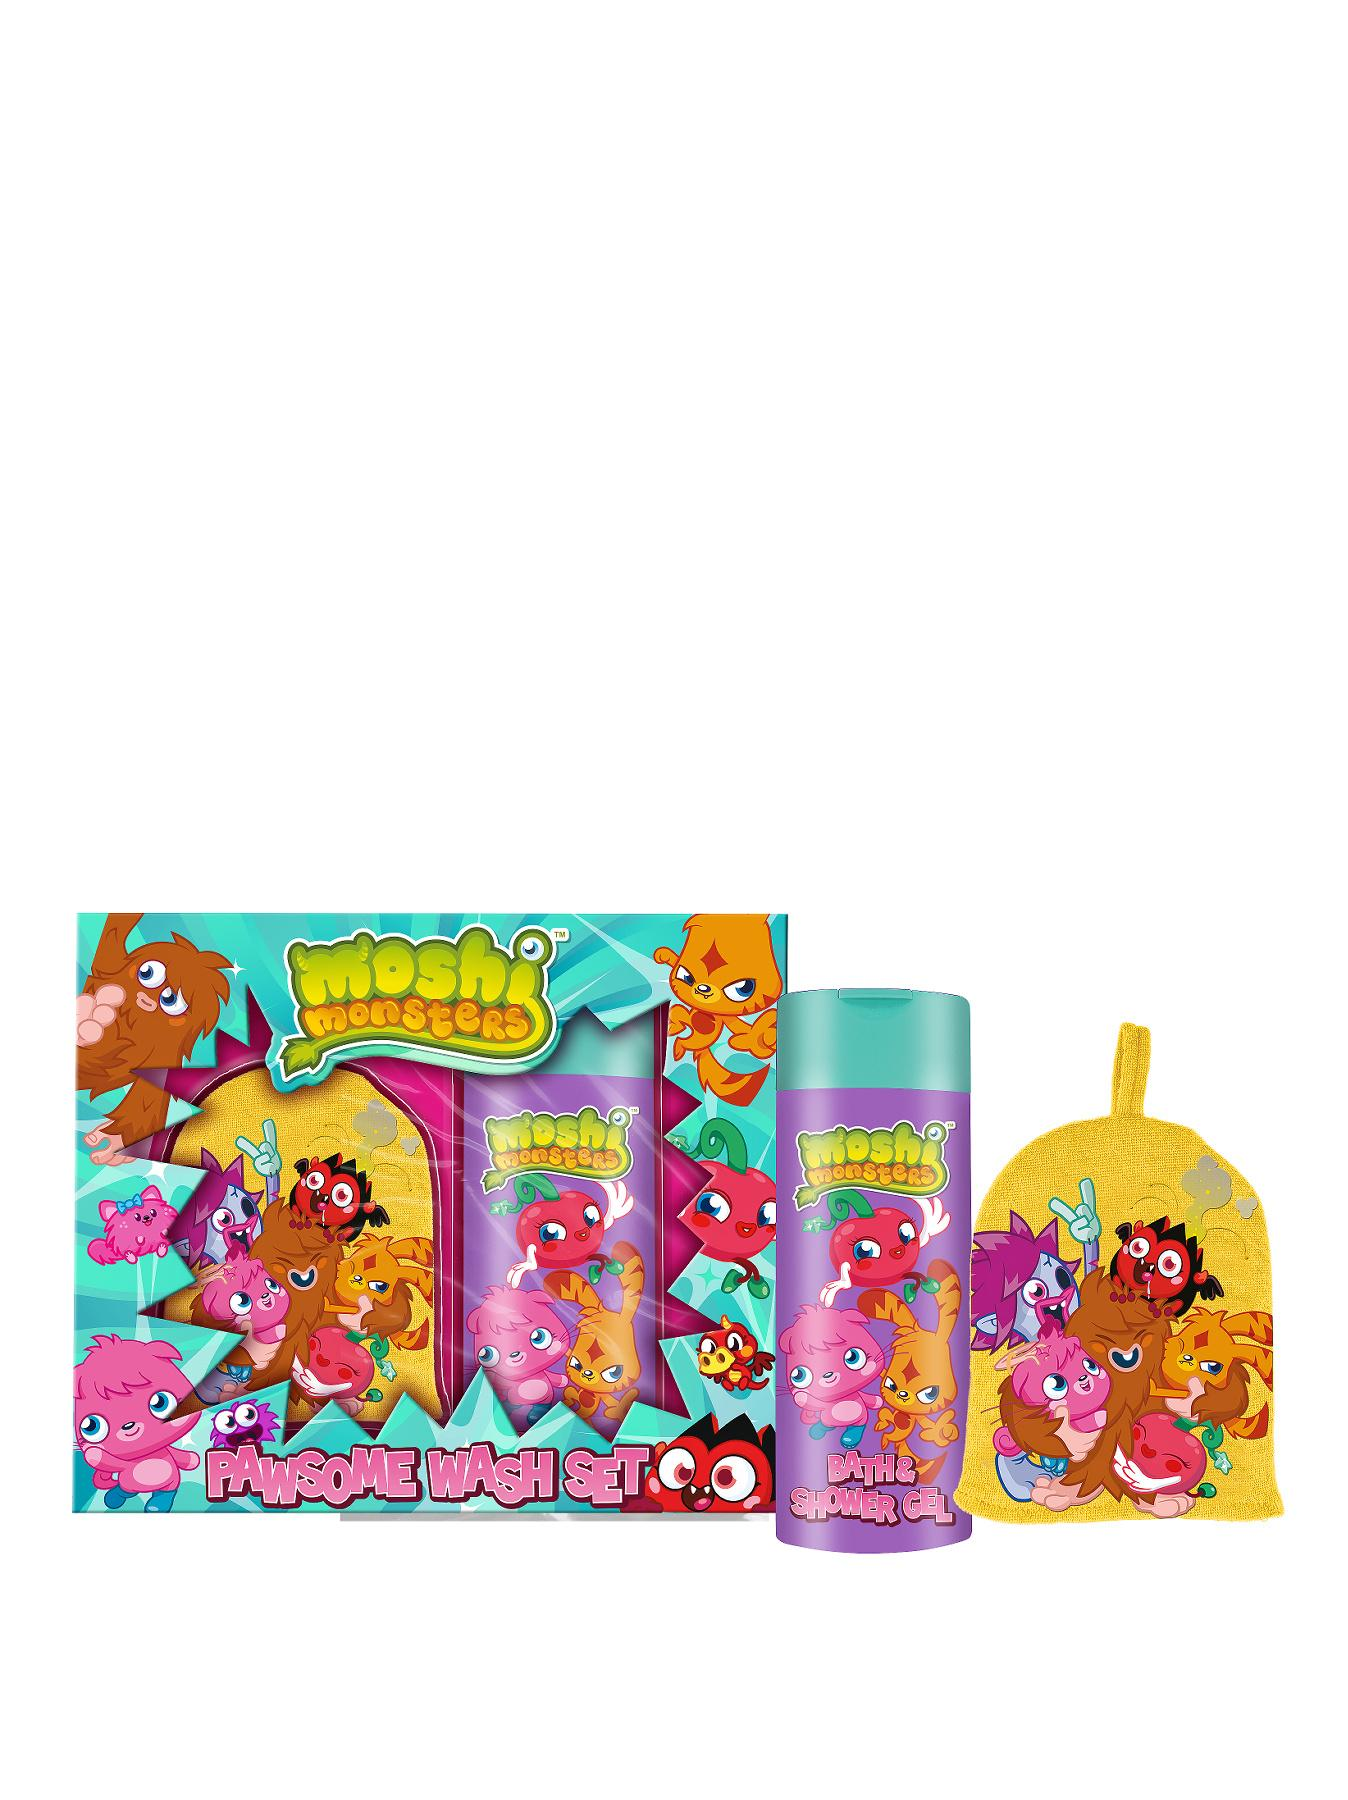 Moshi Monsters Pawsome Wash Gift Set